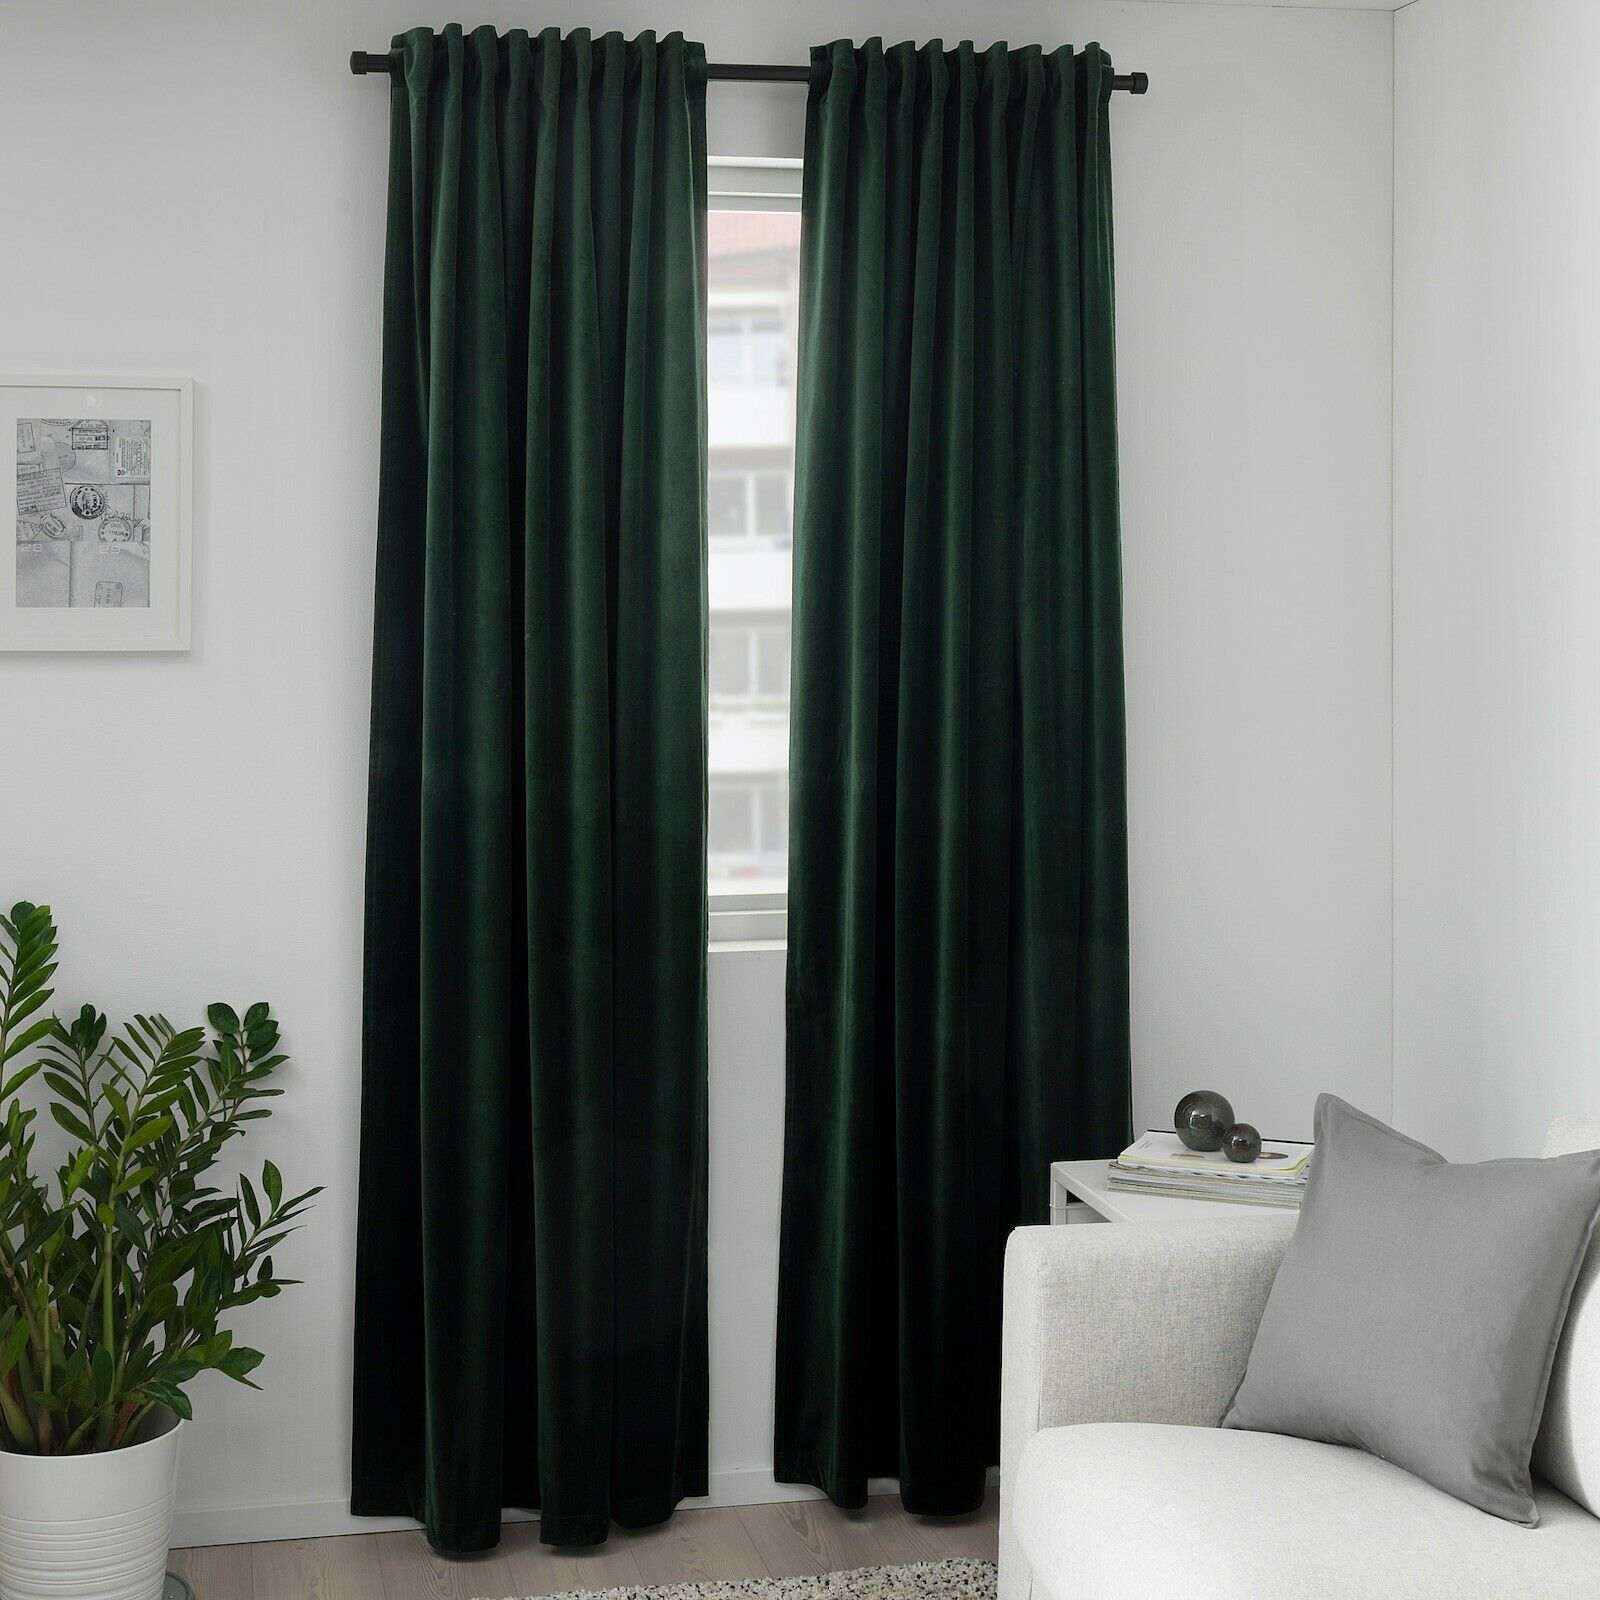 Room Darkening Curtains Bedroom Panels 95 Inches Length Waffle Weave Privacy 2 For Sale Online Ebay